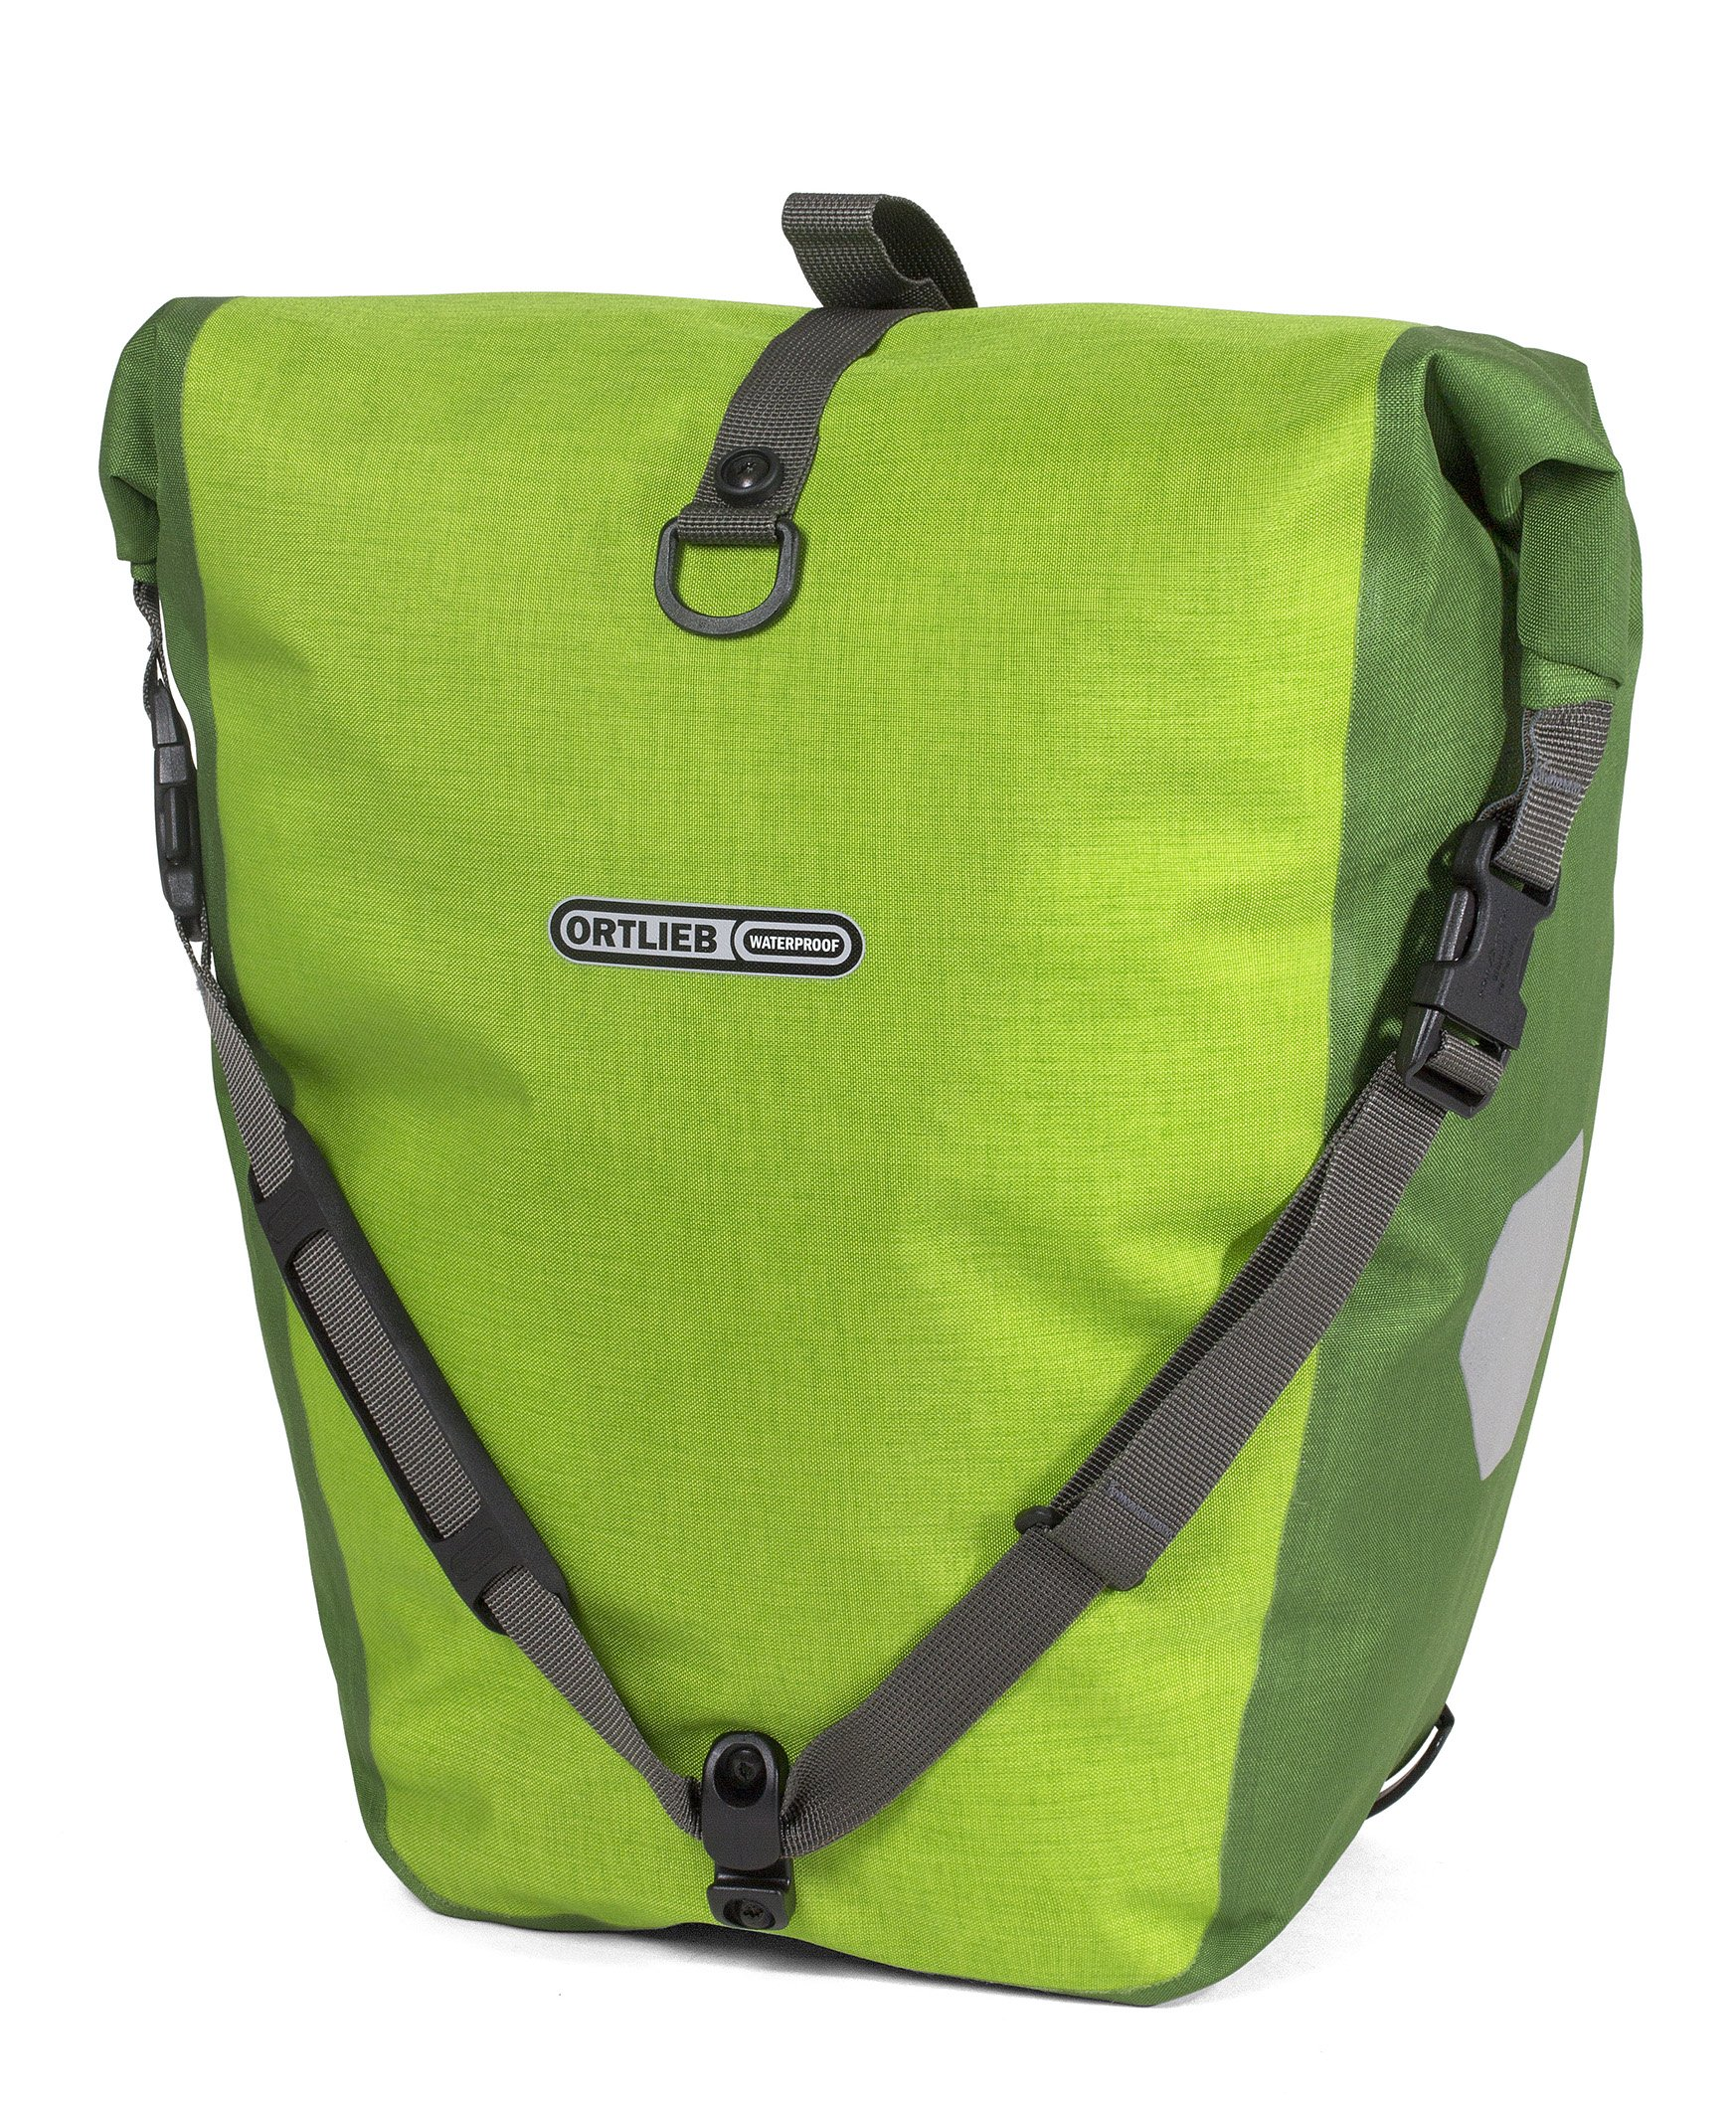 Ortlieb Back-Roller Plus QL2.1 Panniers (Pair) LIME-MOSS GREEN #F5201